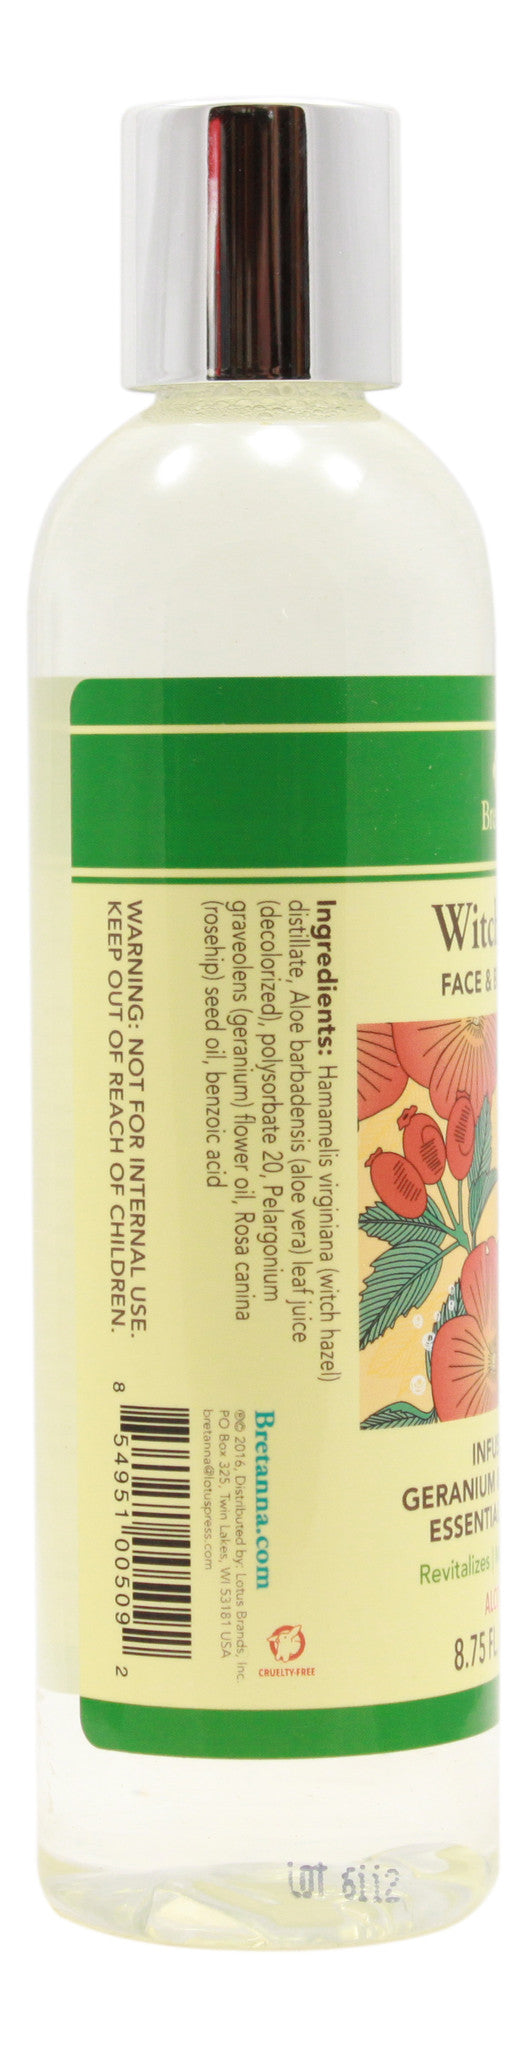 Witch Hazel Geranium & Rose Hip - 8.75 fl oz - Info